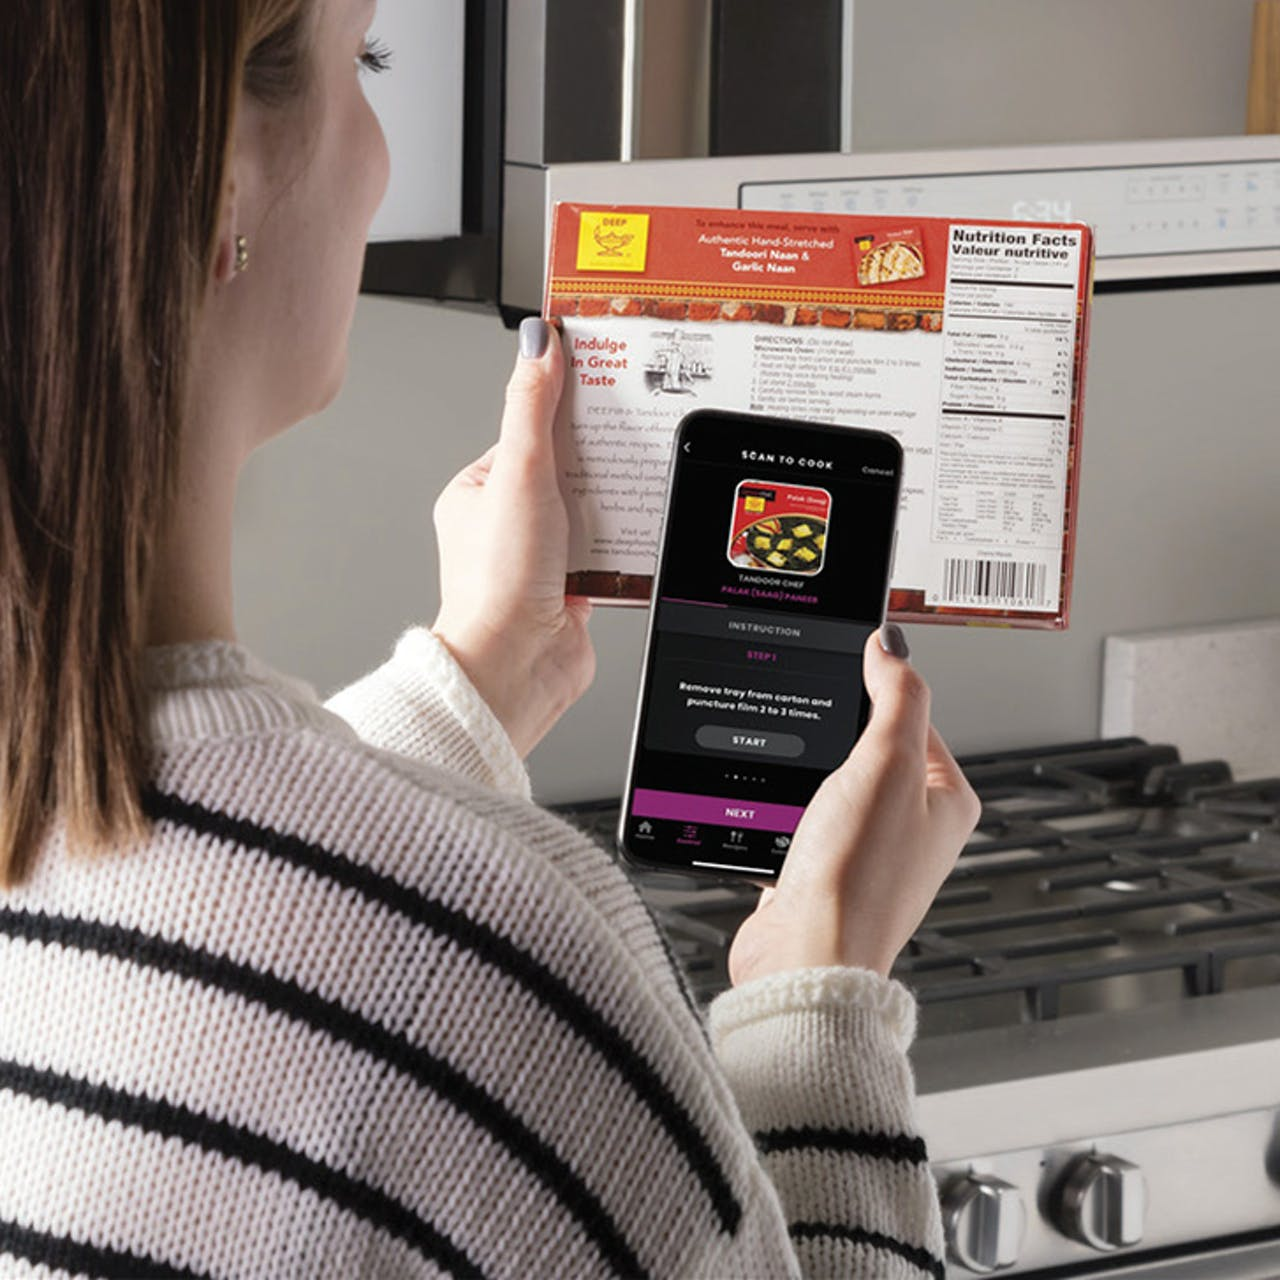 Woman using the scan-to-cook function from the SmartHQ app on her phone